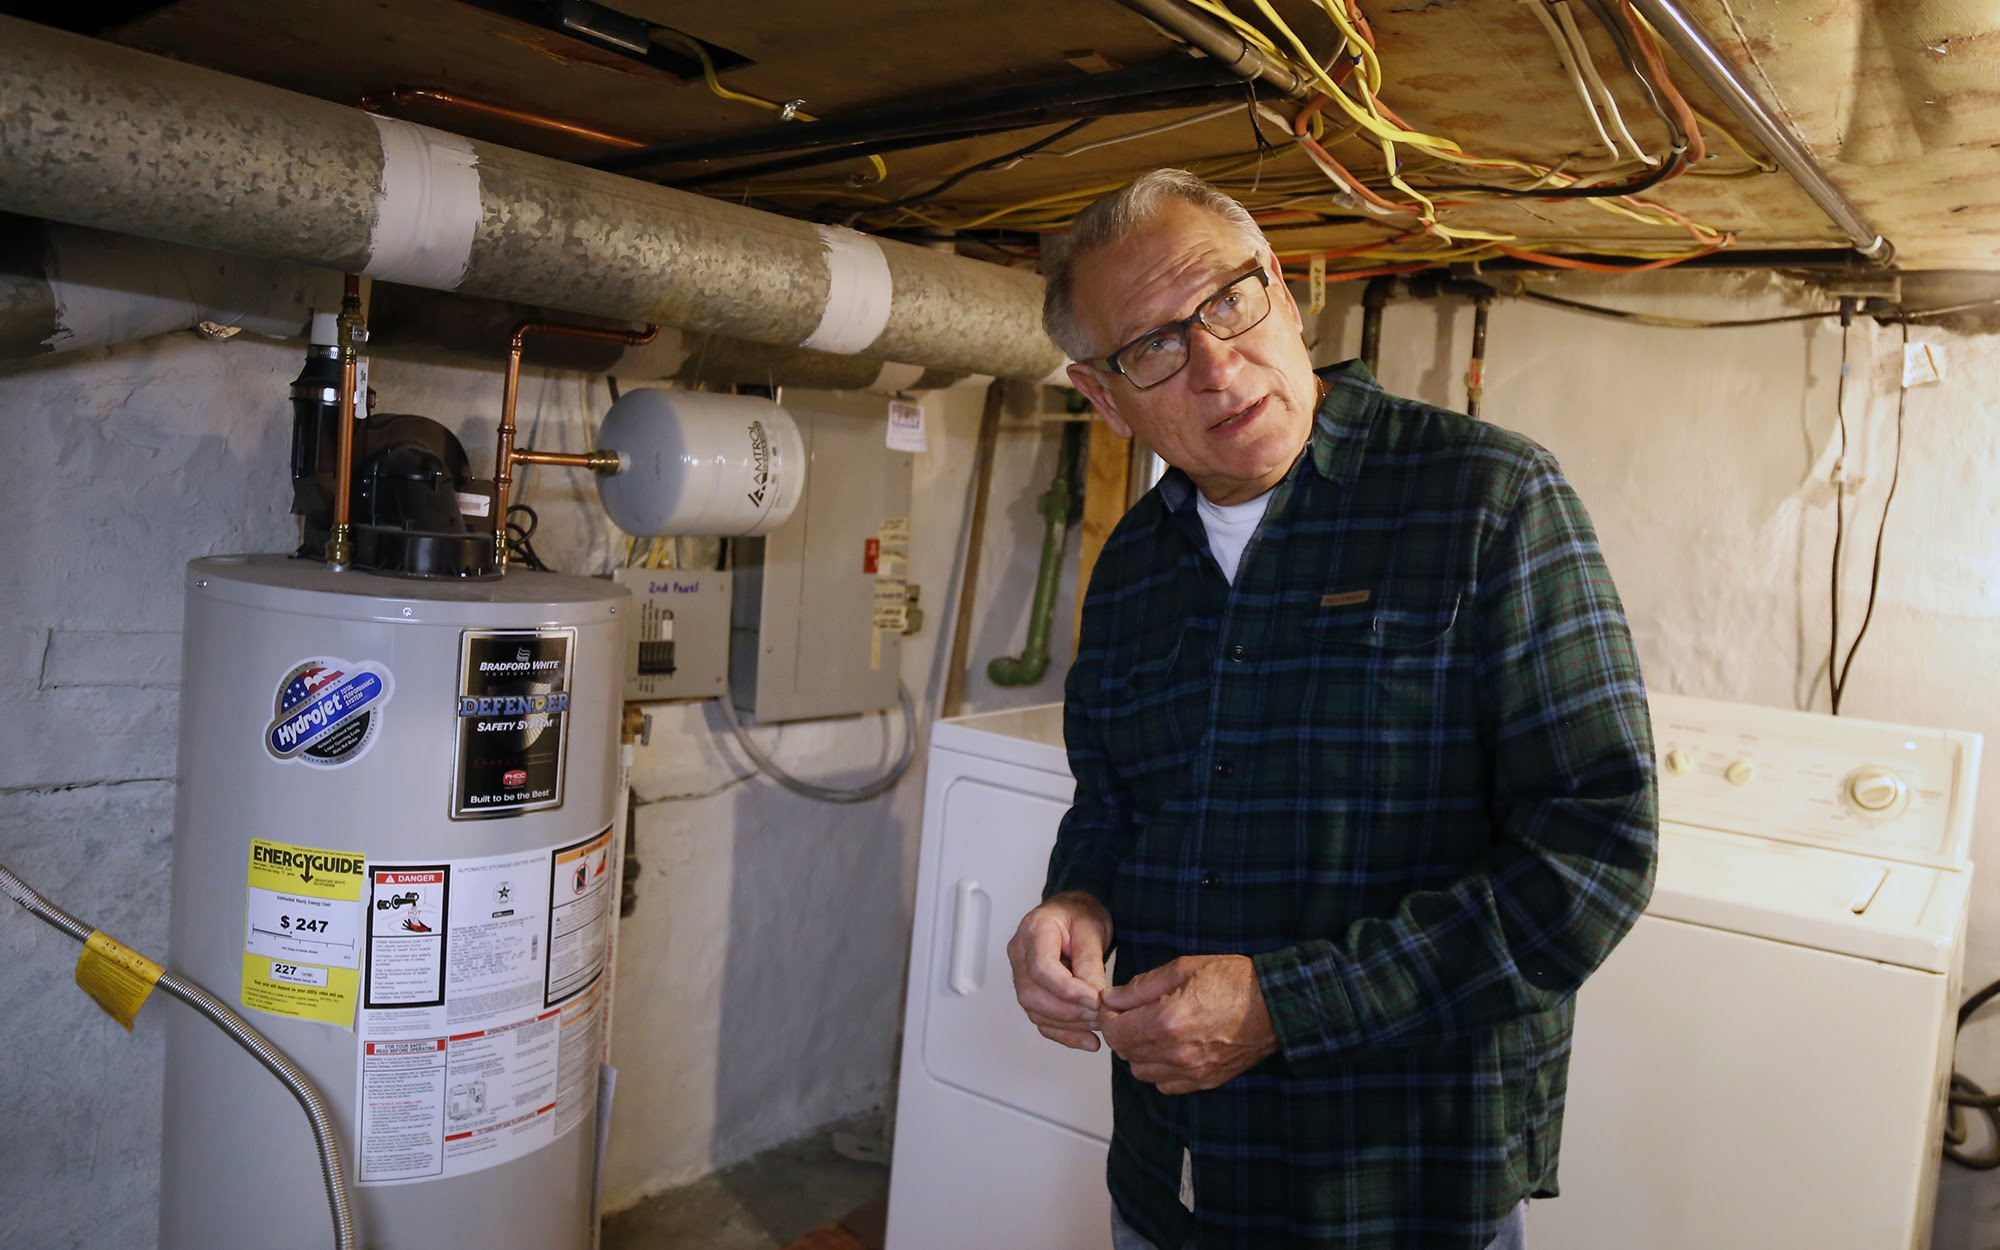 The Pittsburgh nonprofit Conservation Consultants replaced Angelo Norelli's water heater as part of the Grassroots Green Homes program. (Photo by Ryan Loew/PublicSource)